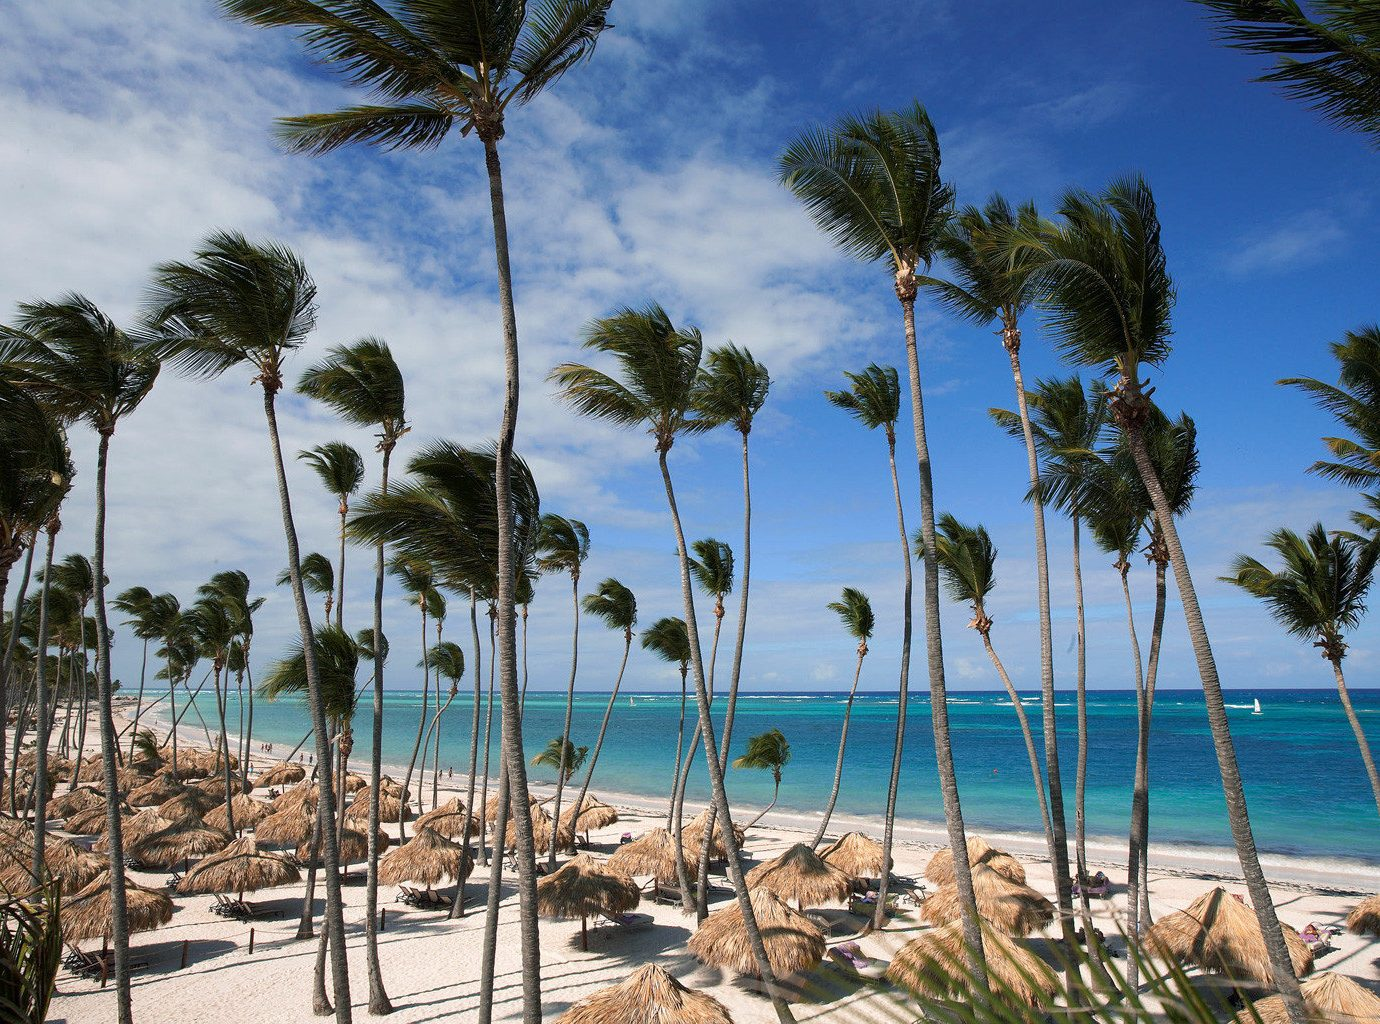 All-inclusive Beach Beachfront Family Hotels Luxury Resort Romantic Scenic views Waterfront outdoor tree sky palm water palm family caribbean vacation Ocean plant Sea shore lined arecales Coast woody plant tropics lawn Lagoon bay sandy cape flowering plant shade several line